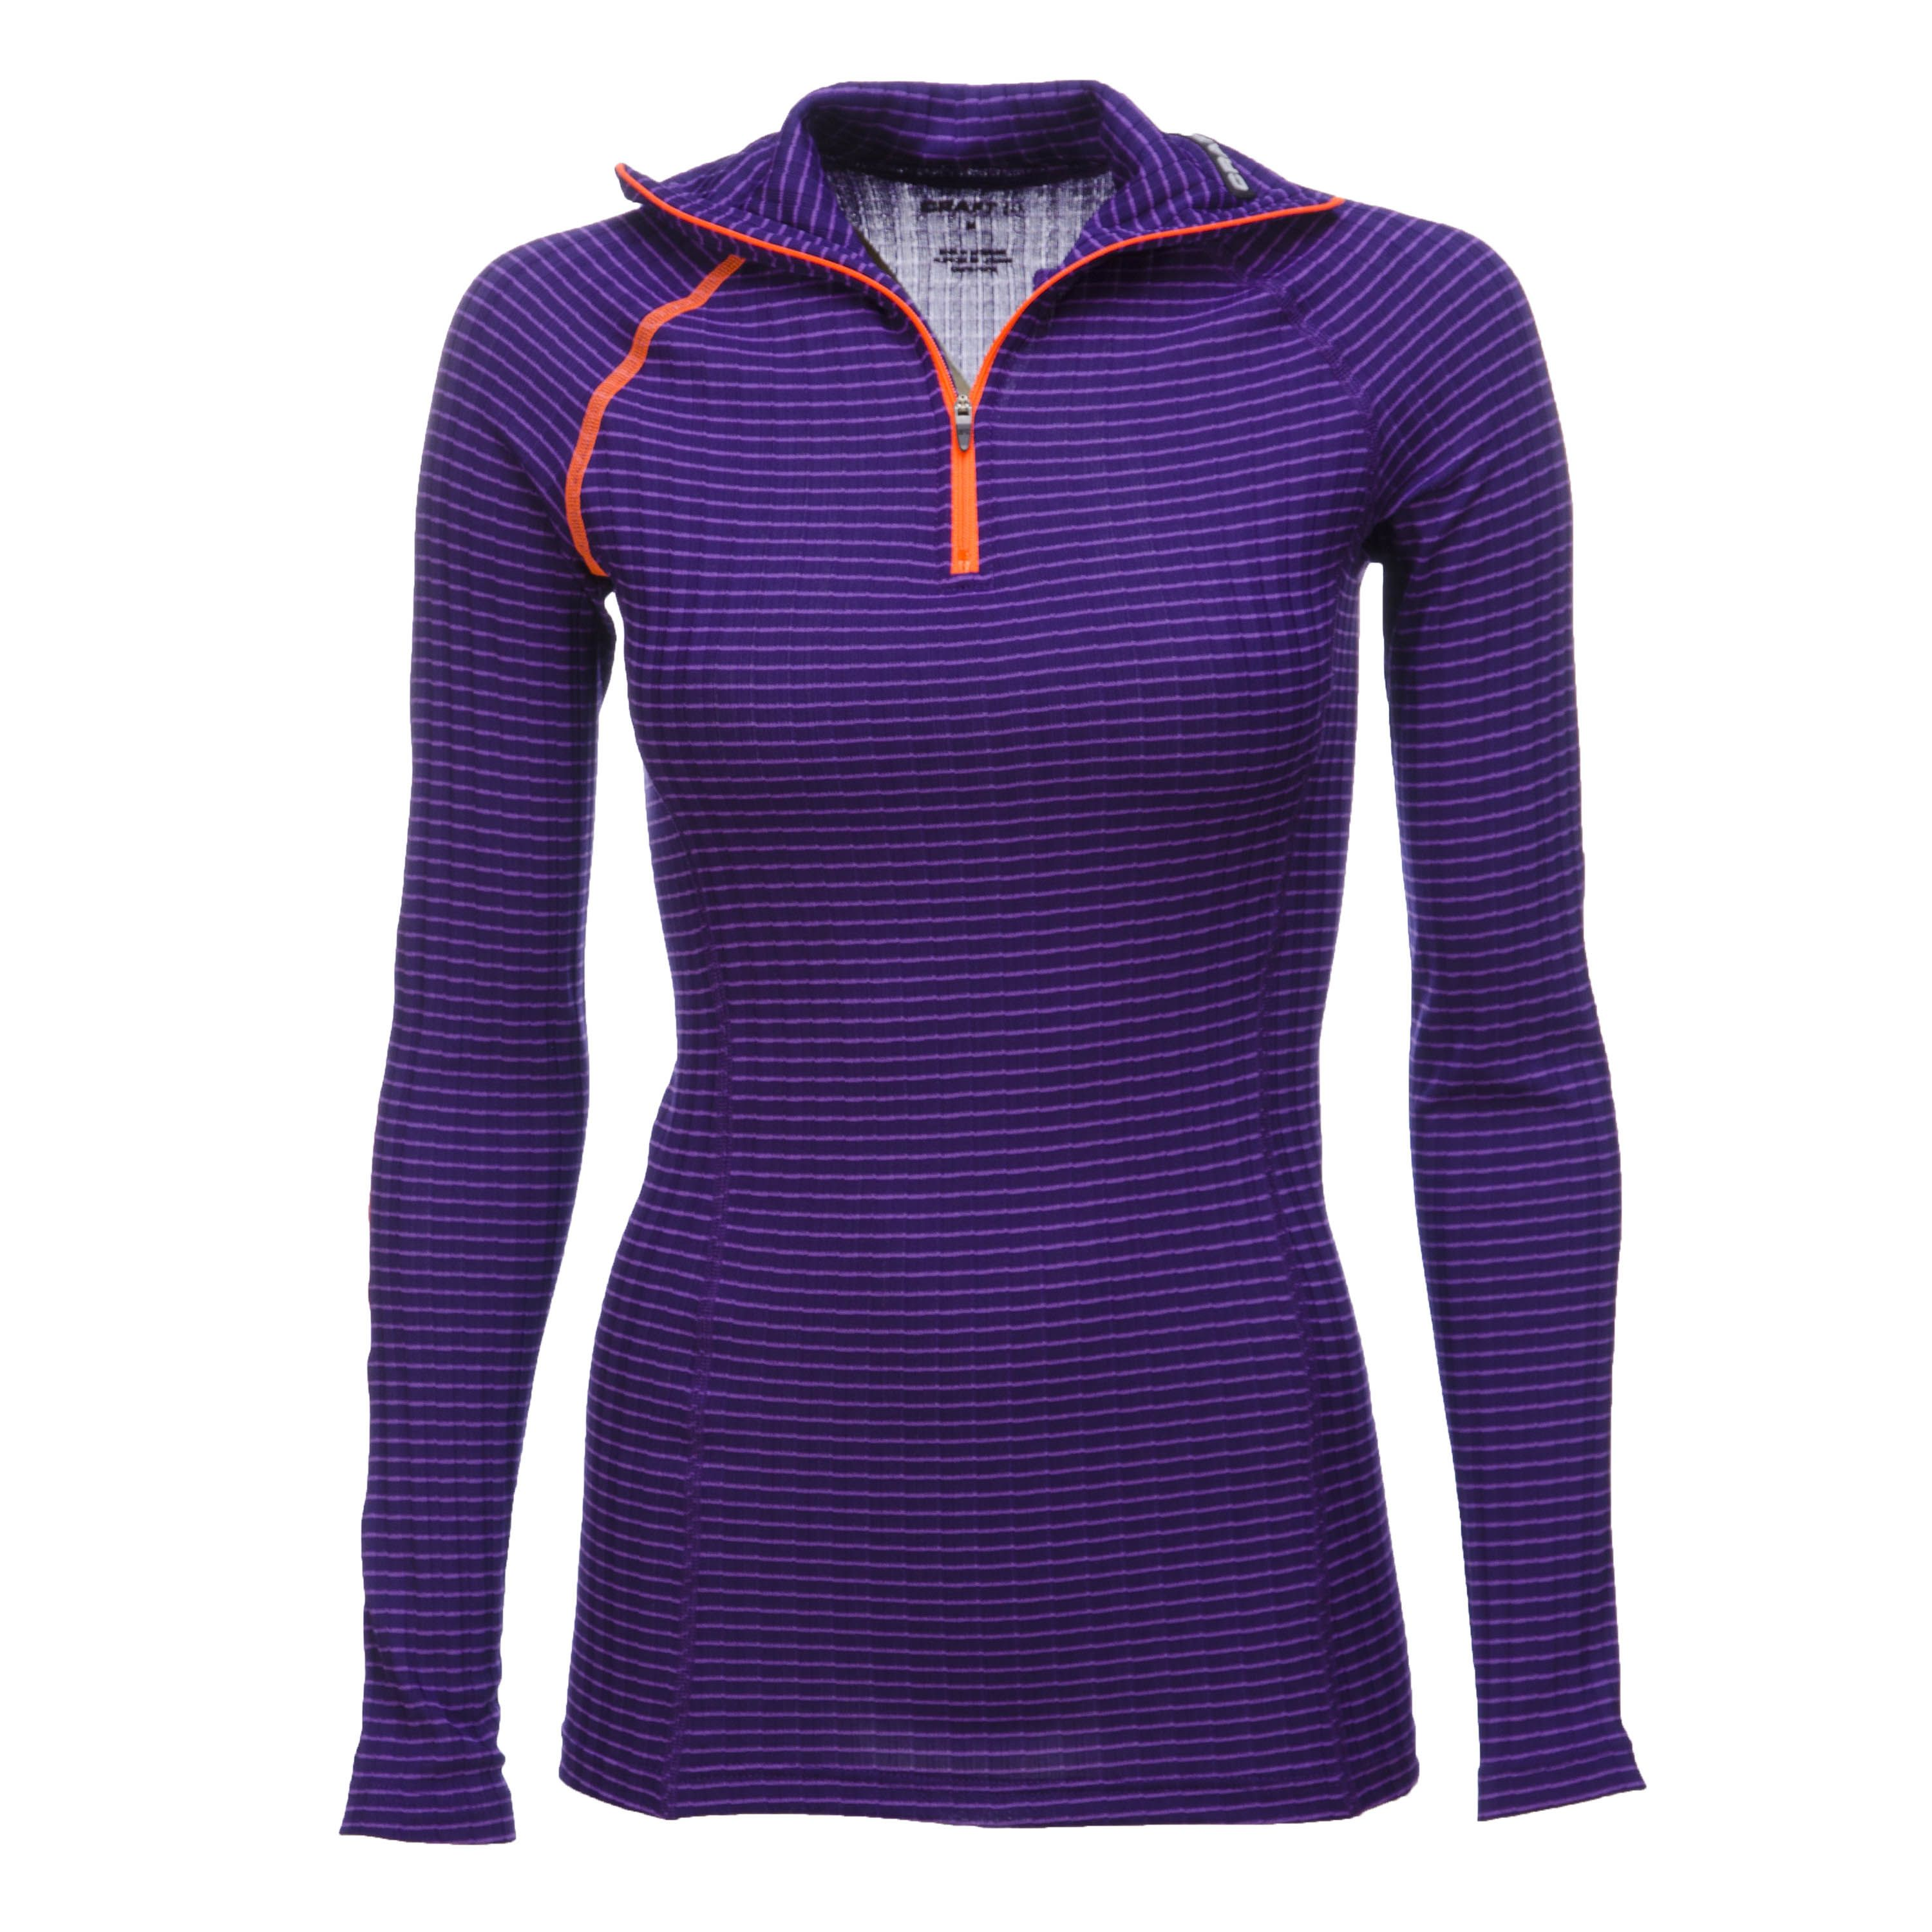 Craft be active extreme cn w thermal shirt women violet thermal